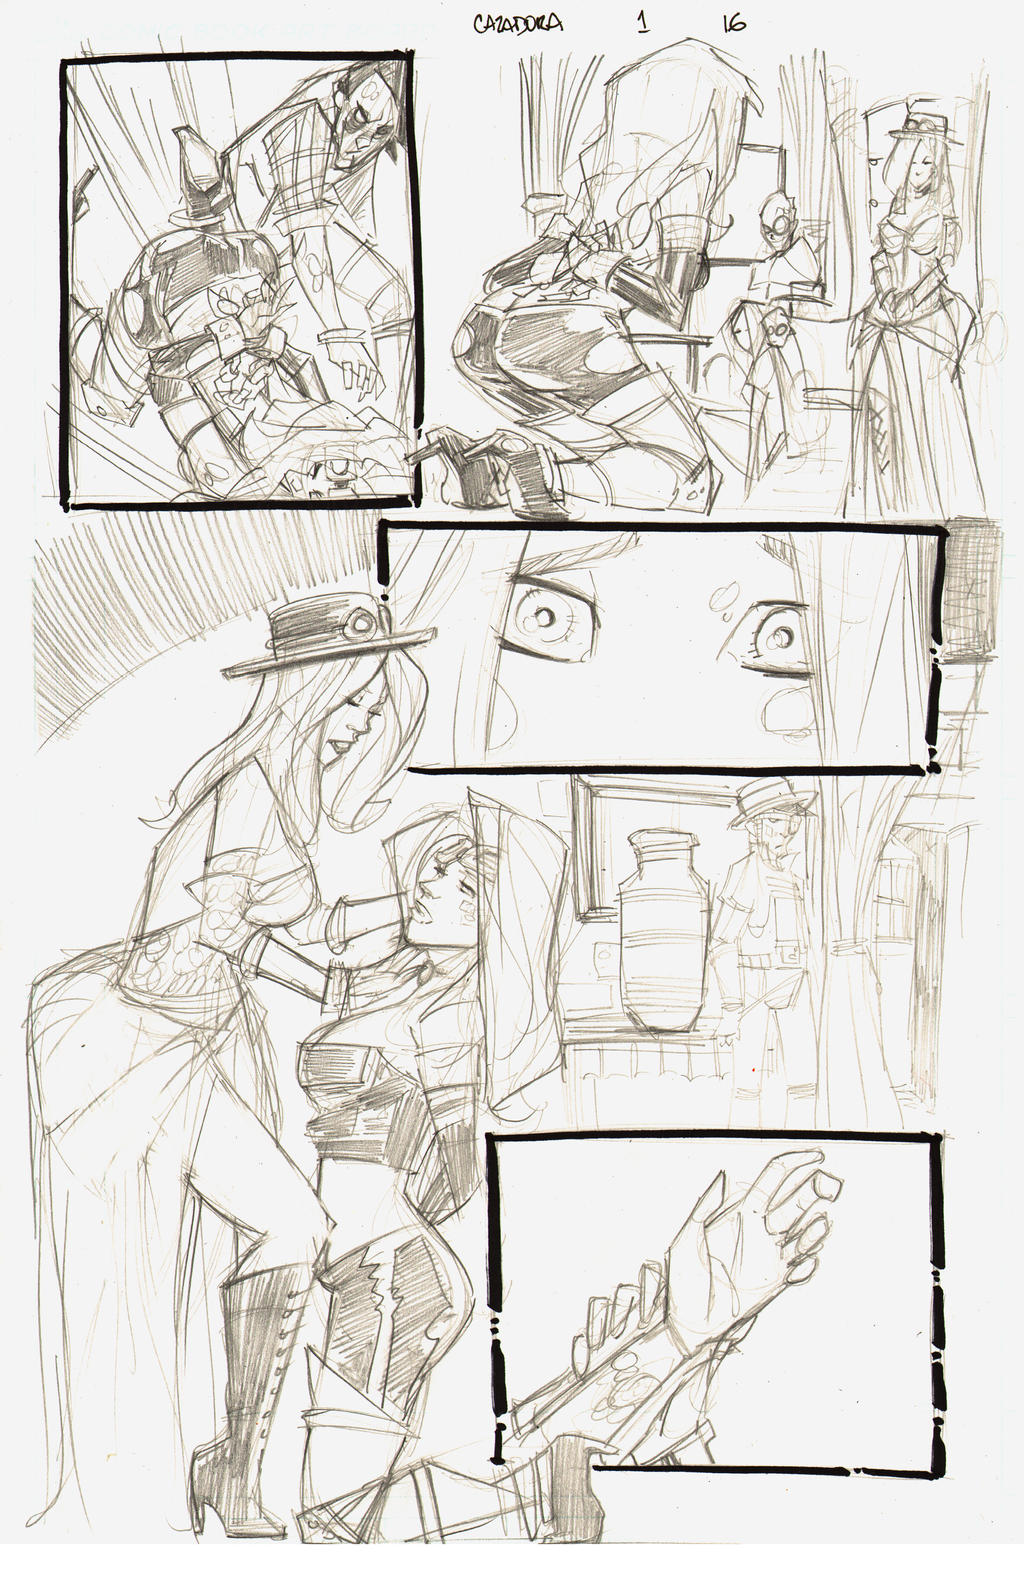 Cazadora Page 16 Pencils for INKERS by rantz